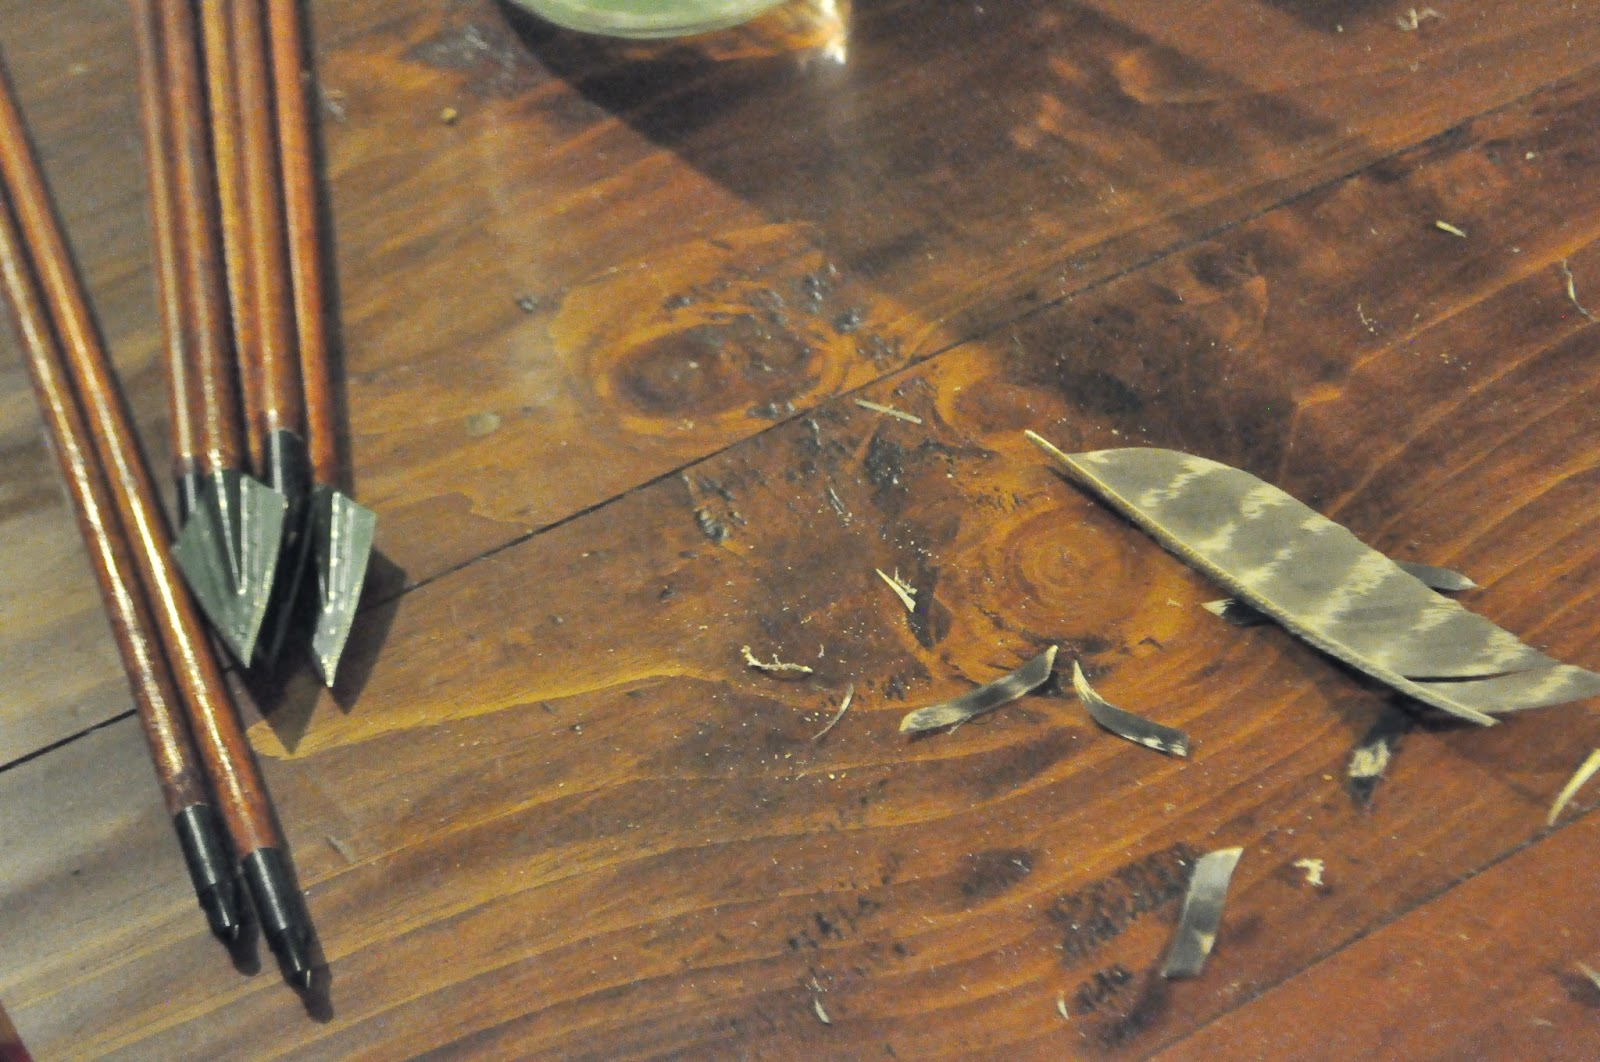 An arrow as good as it 39 s feathers shooting traditional bows - How to make a homemade bow and arrow out of wood ...